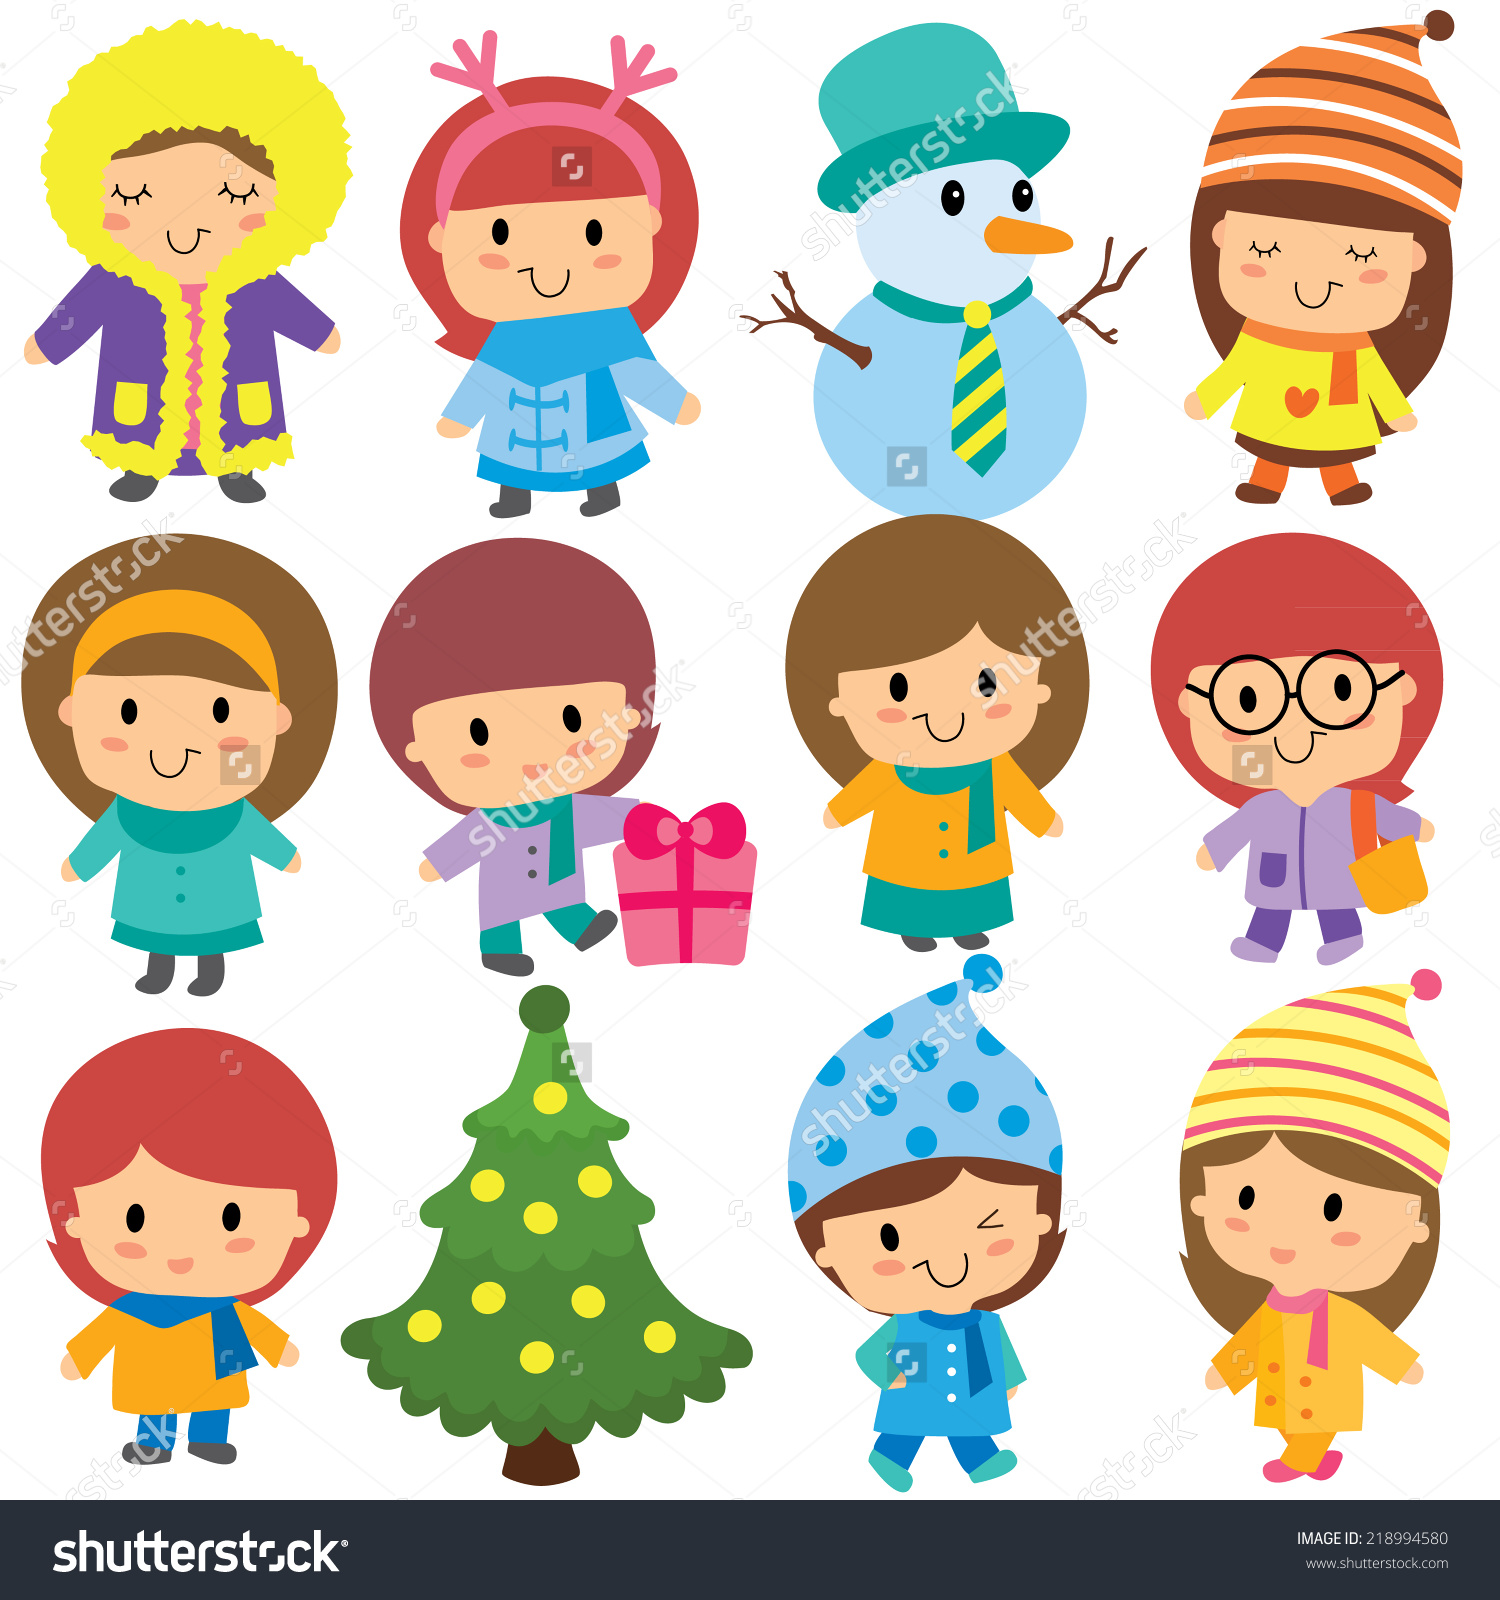 Cute expressions of kids clipart.